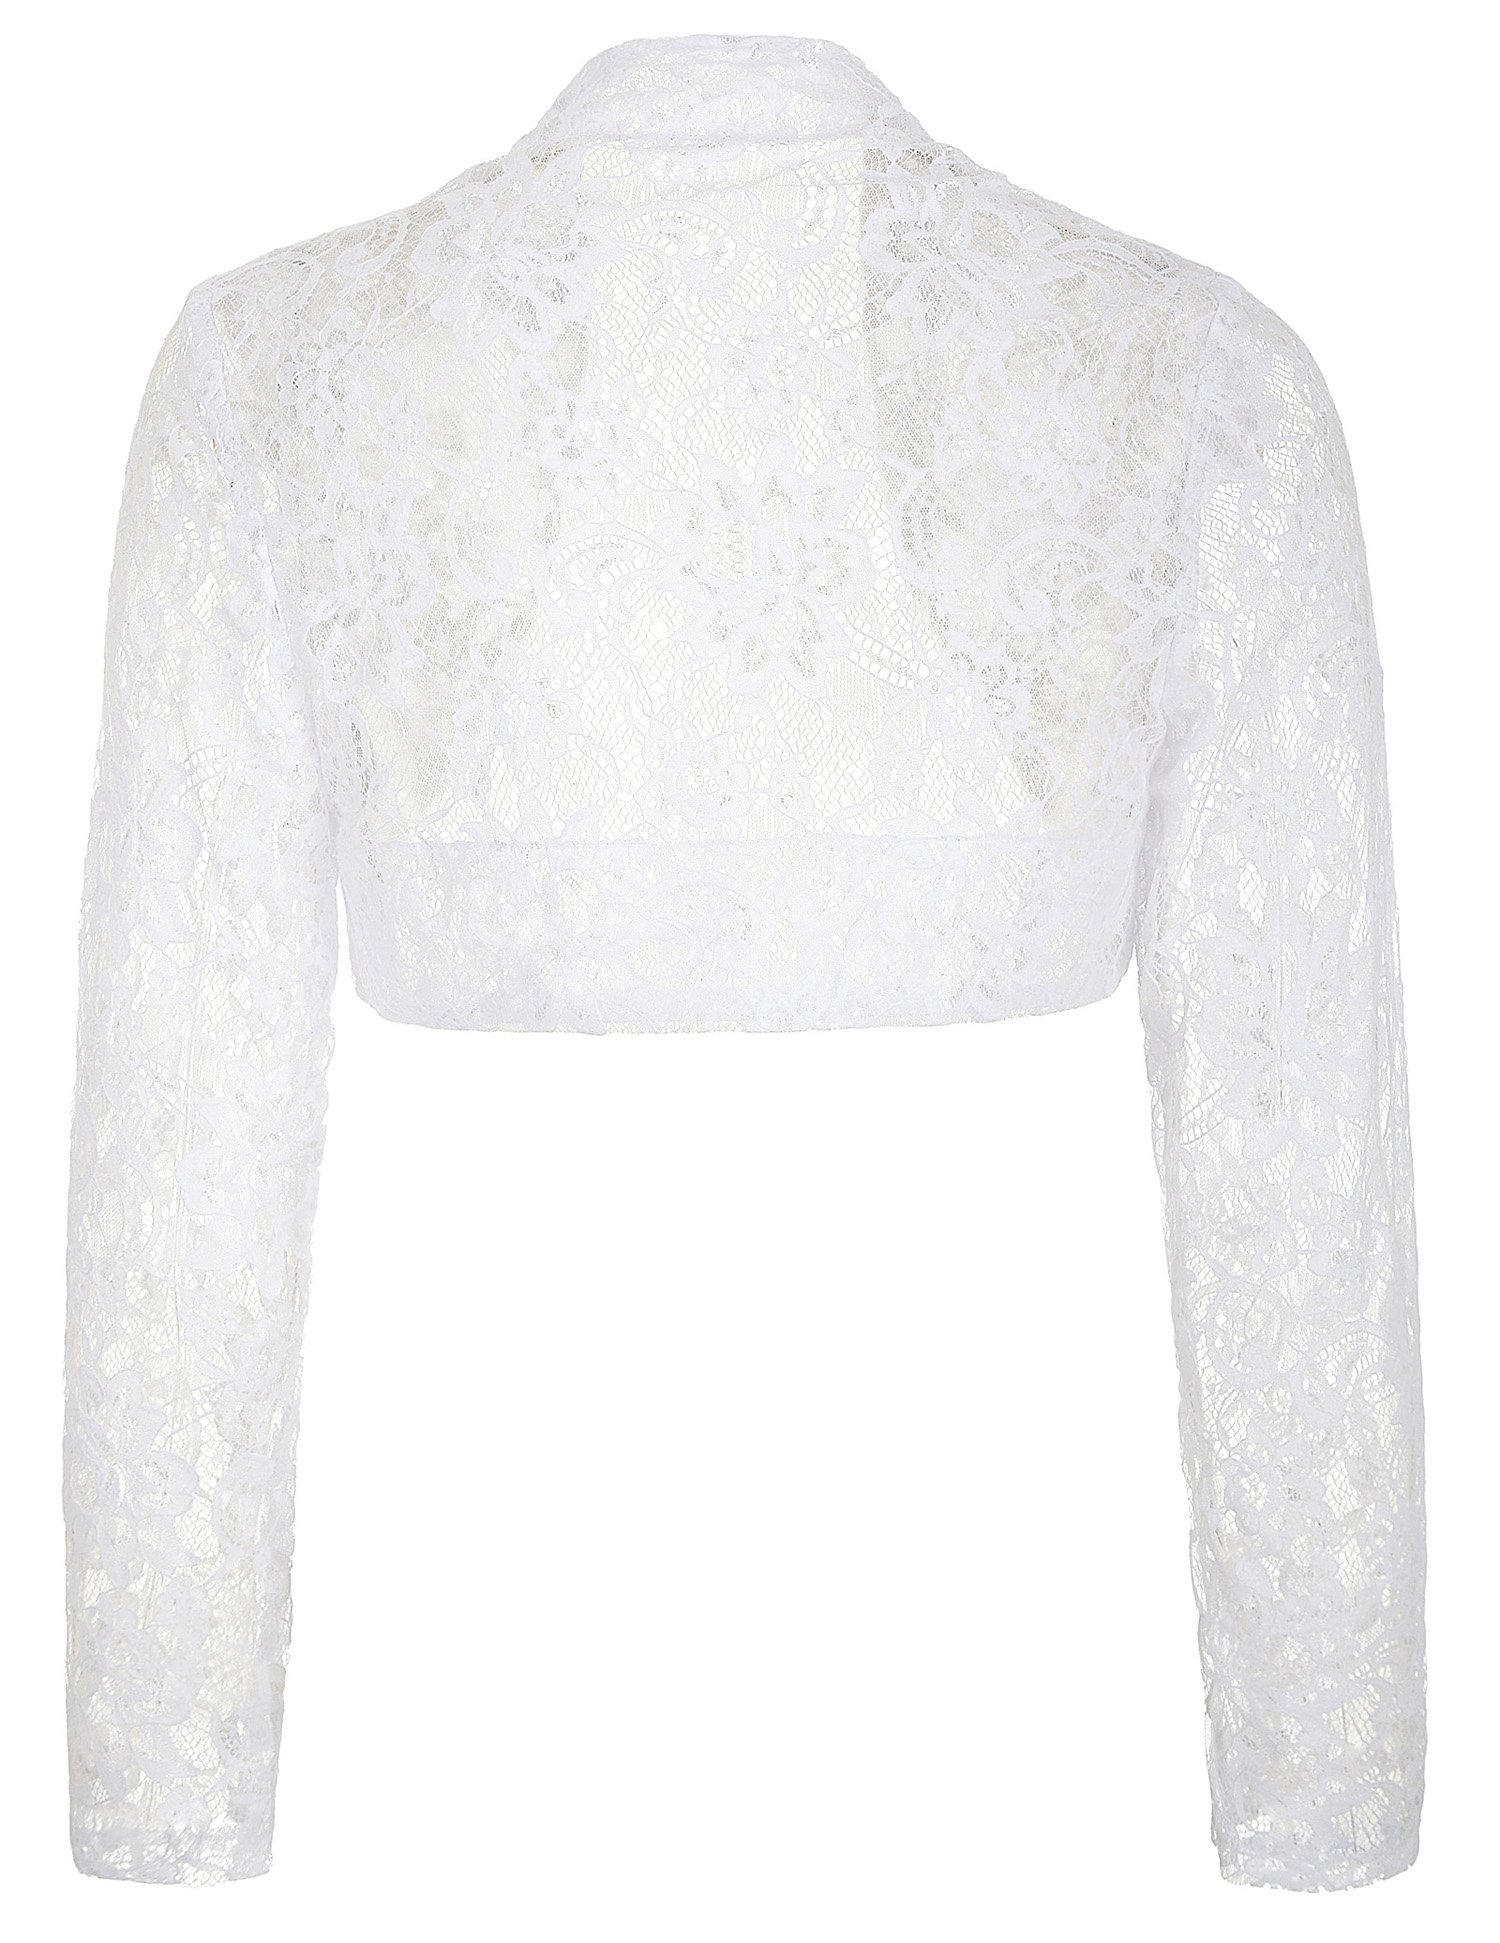 Women's Lace Crochet Bolero Hollow Sheer Knit Cardigan Top (XL, White) by JS Fashion Vintage Dress (Image #2)